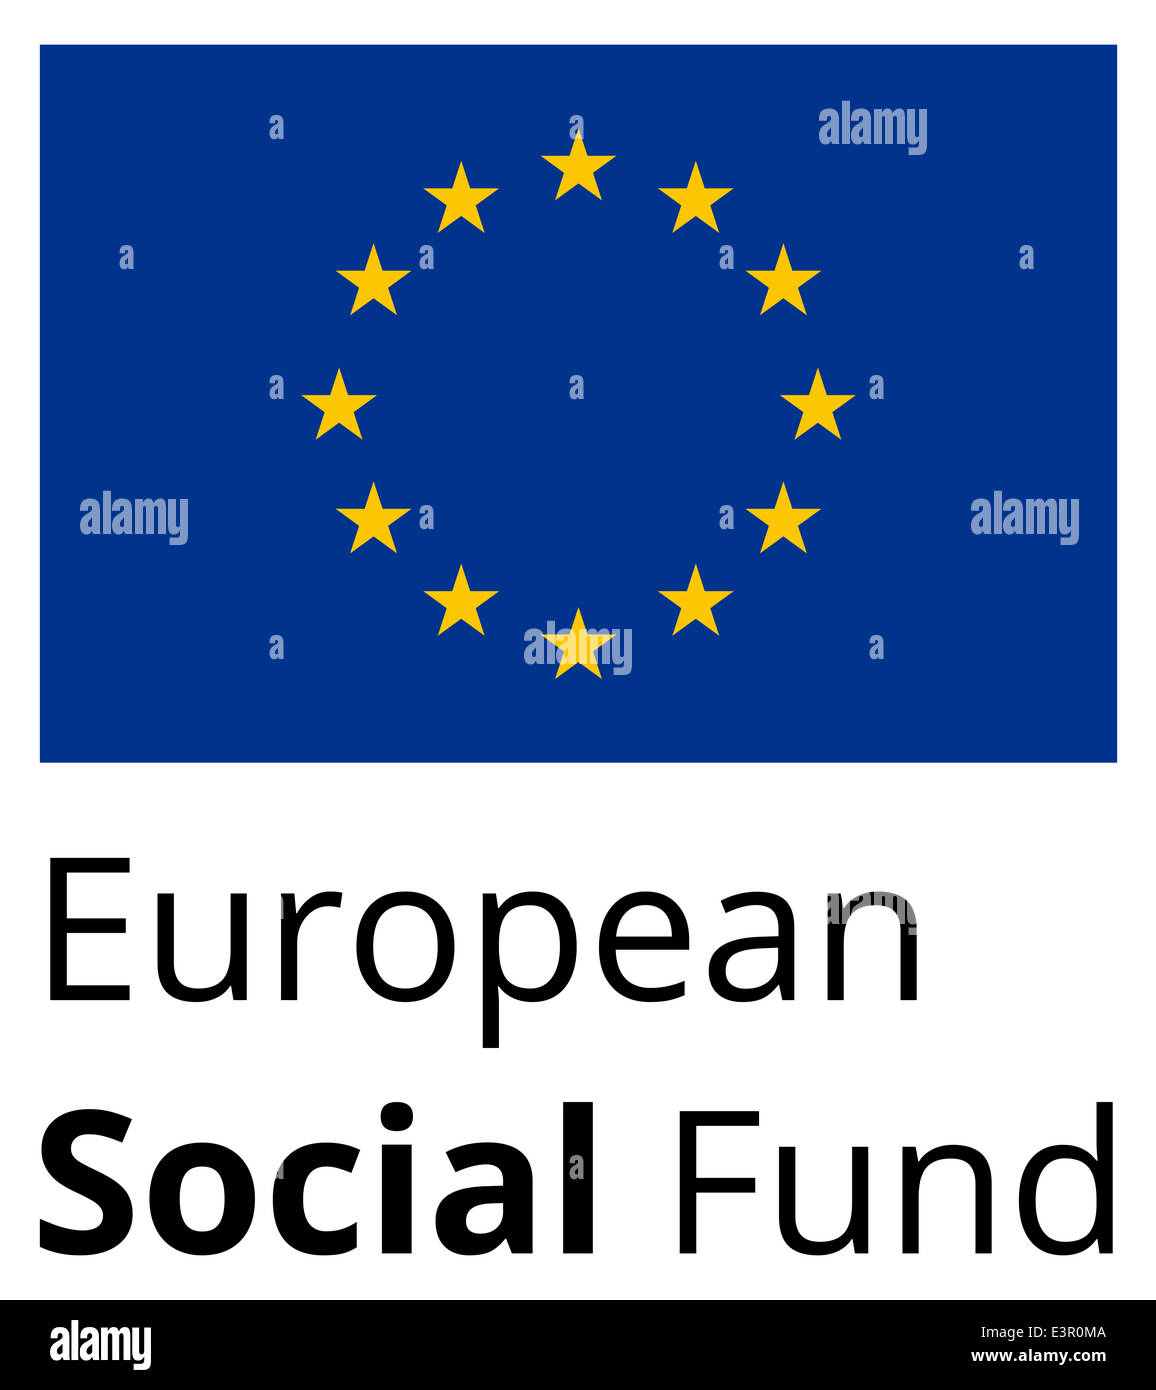 European Social Fund - standard and proprtional sign with EU flag and text - flat design on white background - Stock Image